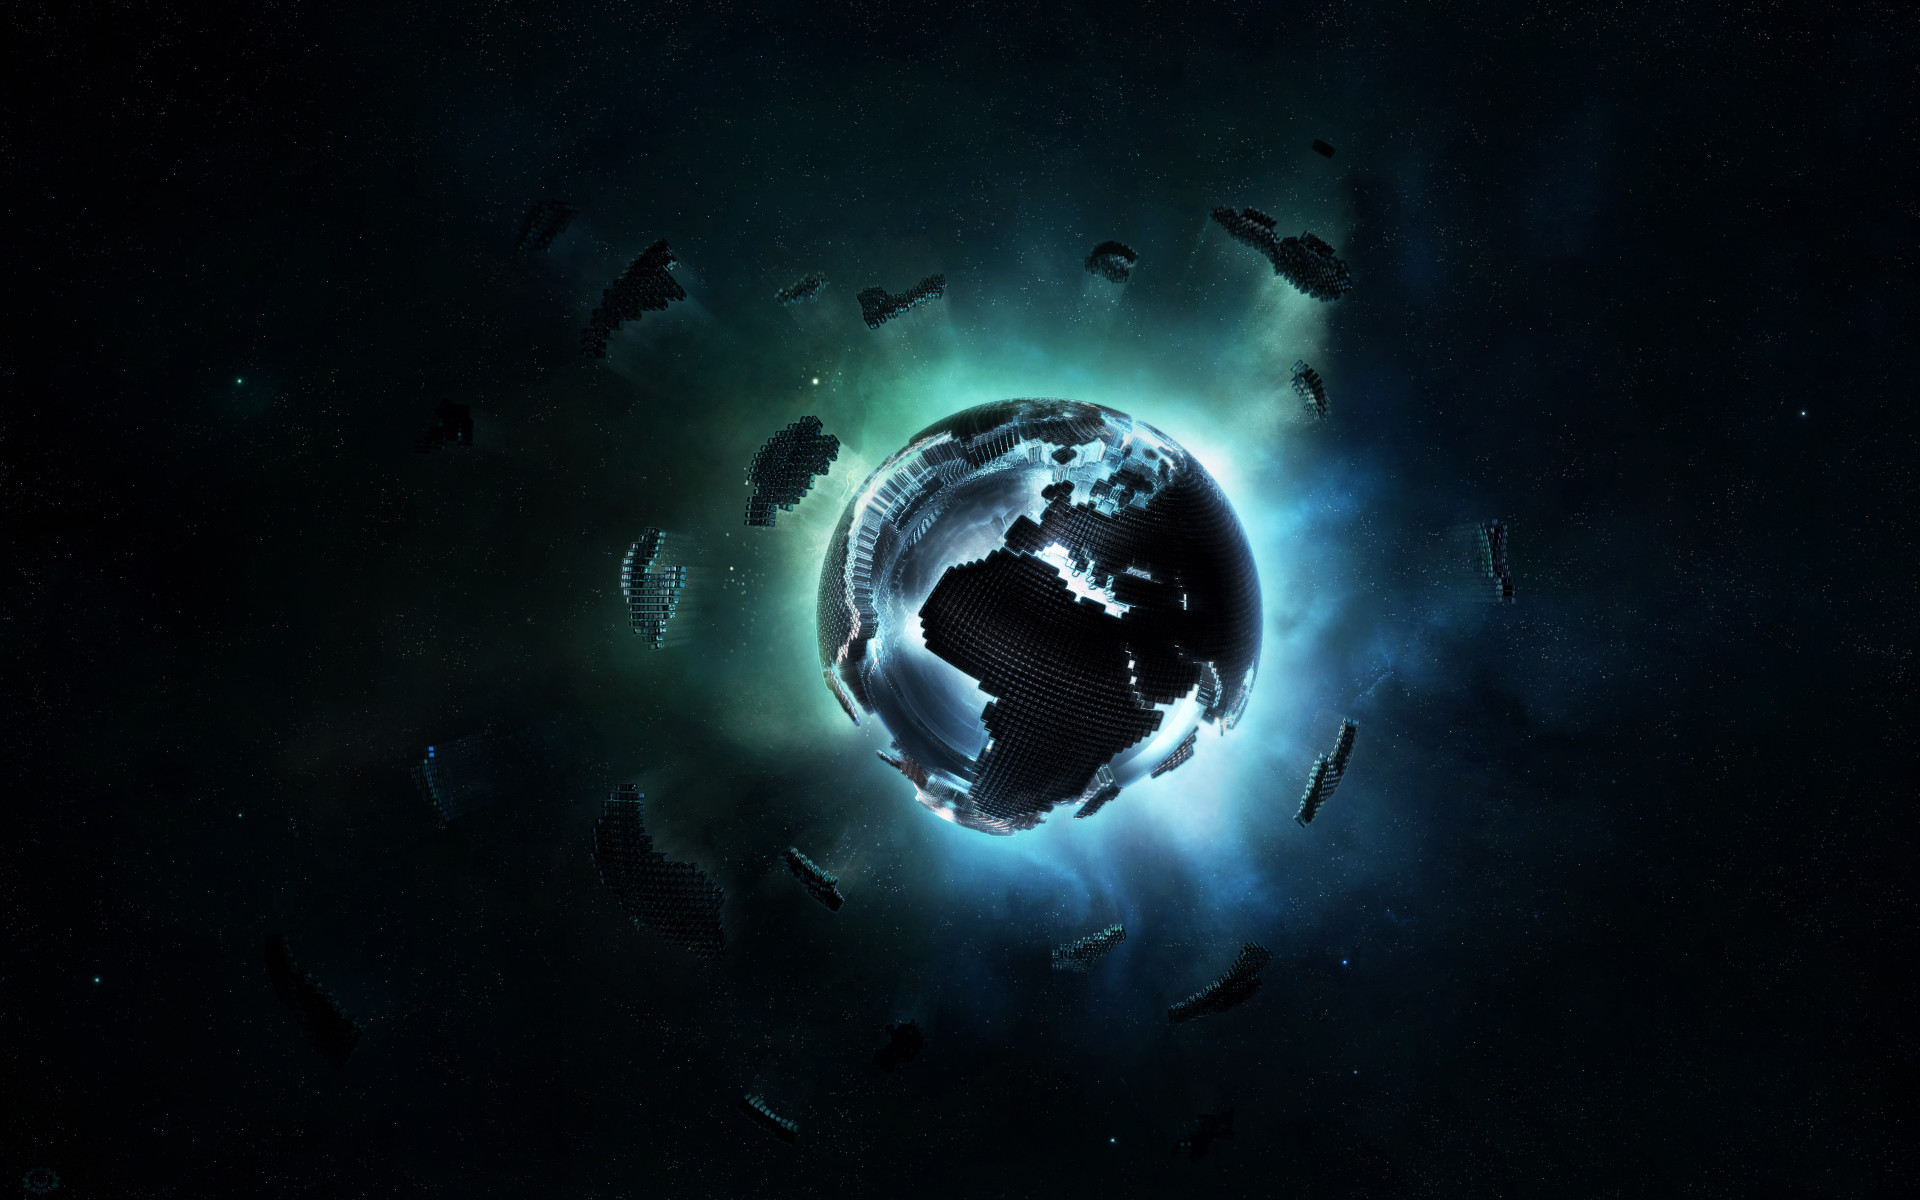 Outer Space Earth HD Wallpaper | Wallpapers | Pinterest | Outer space and  Hd wallpaper